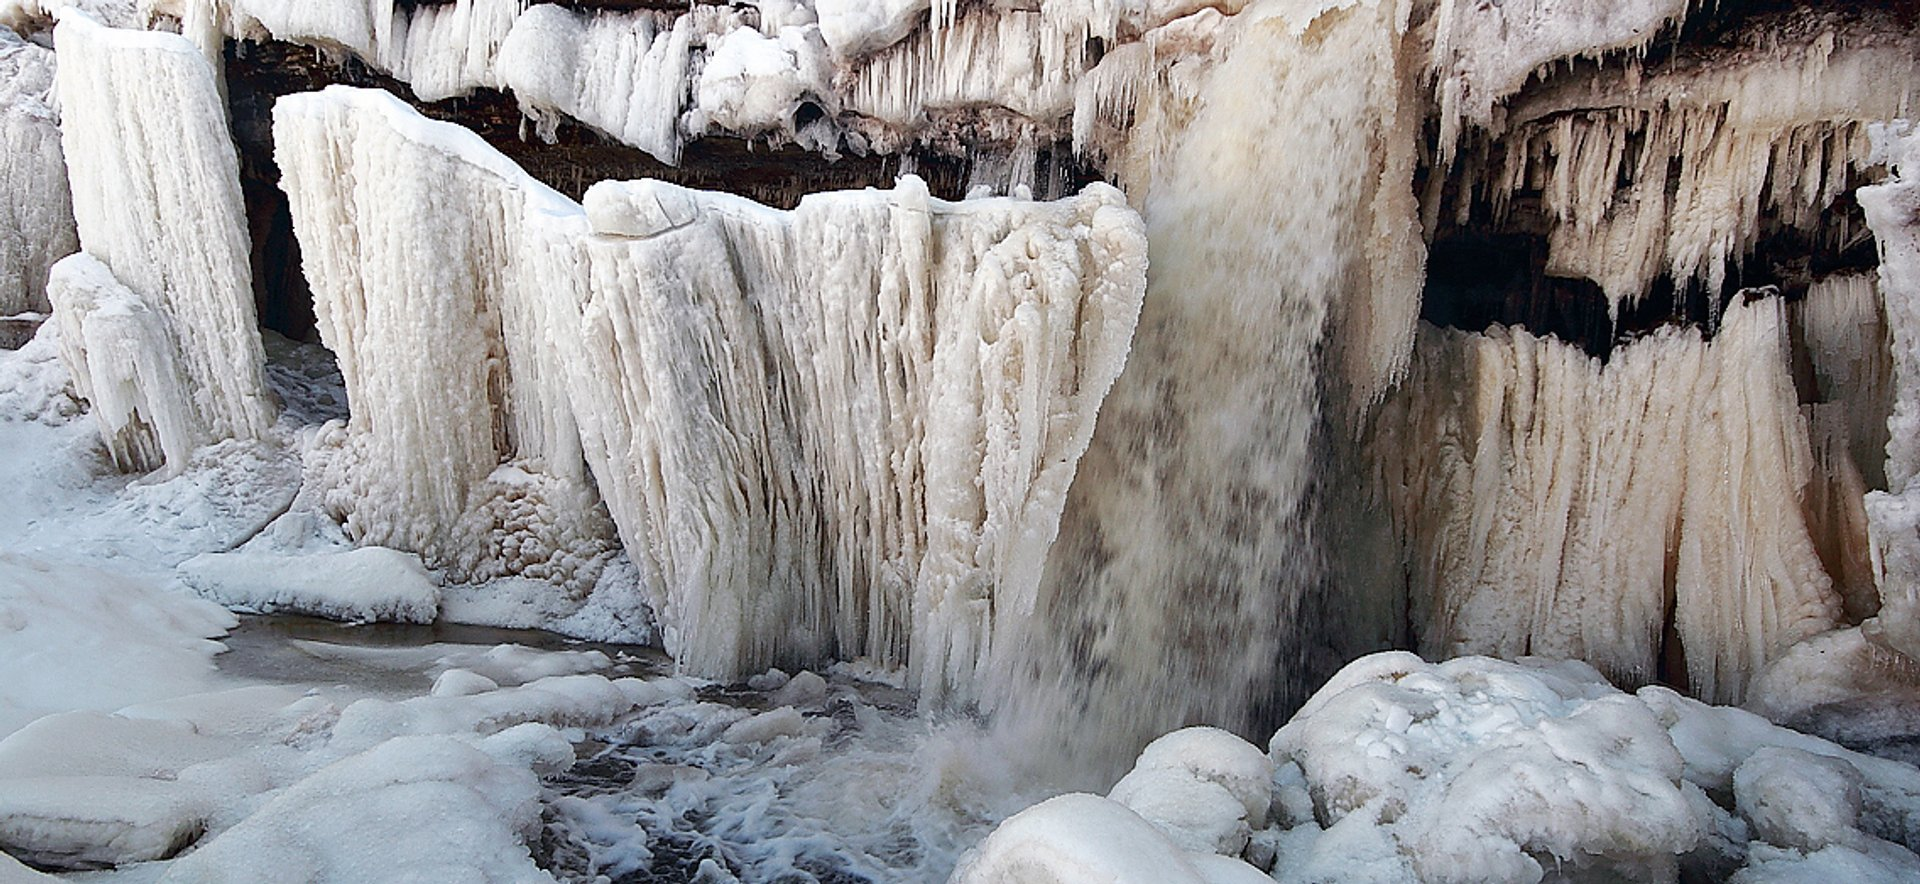 Best time to see Frozen Waterfalls in Estonia 2019